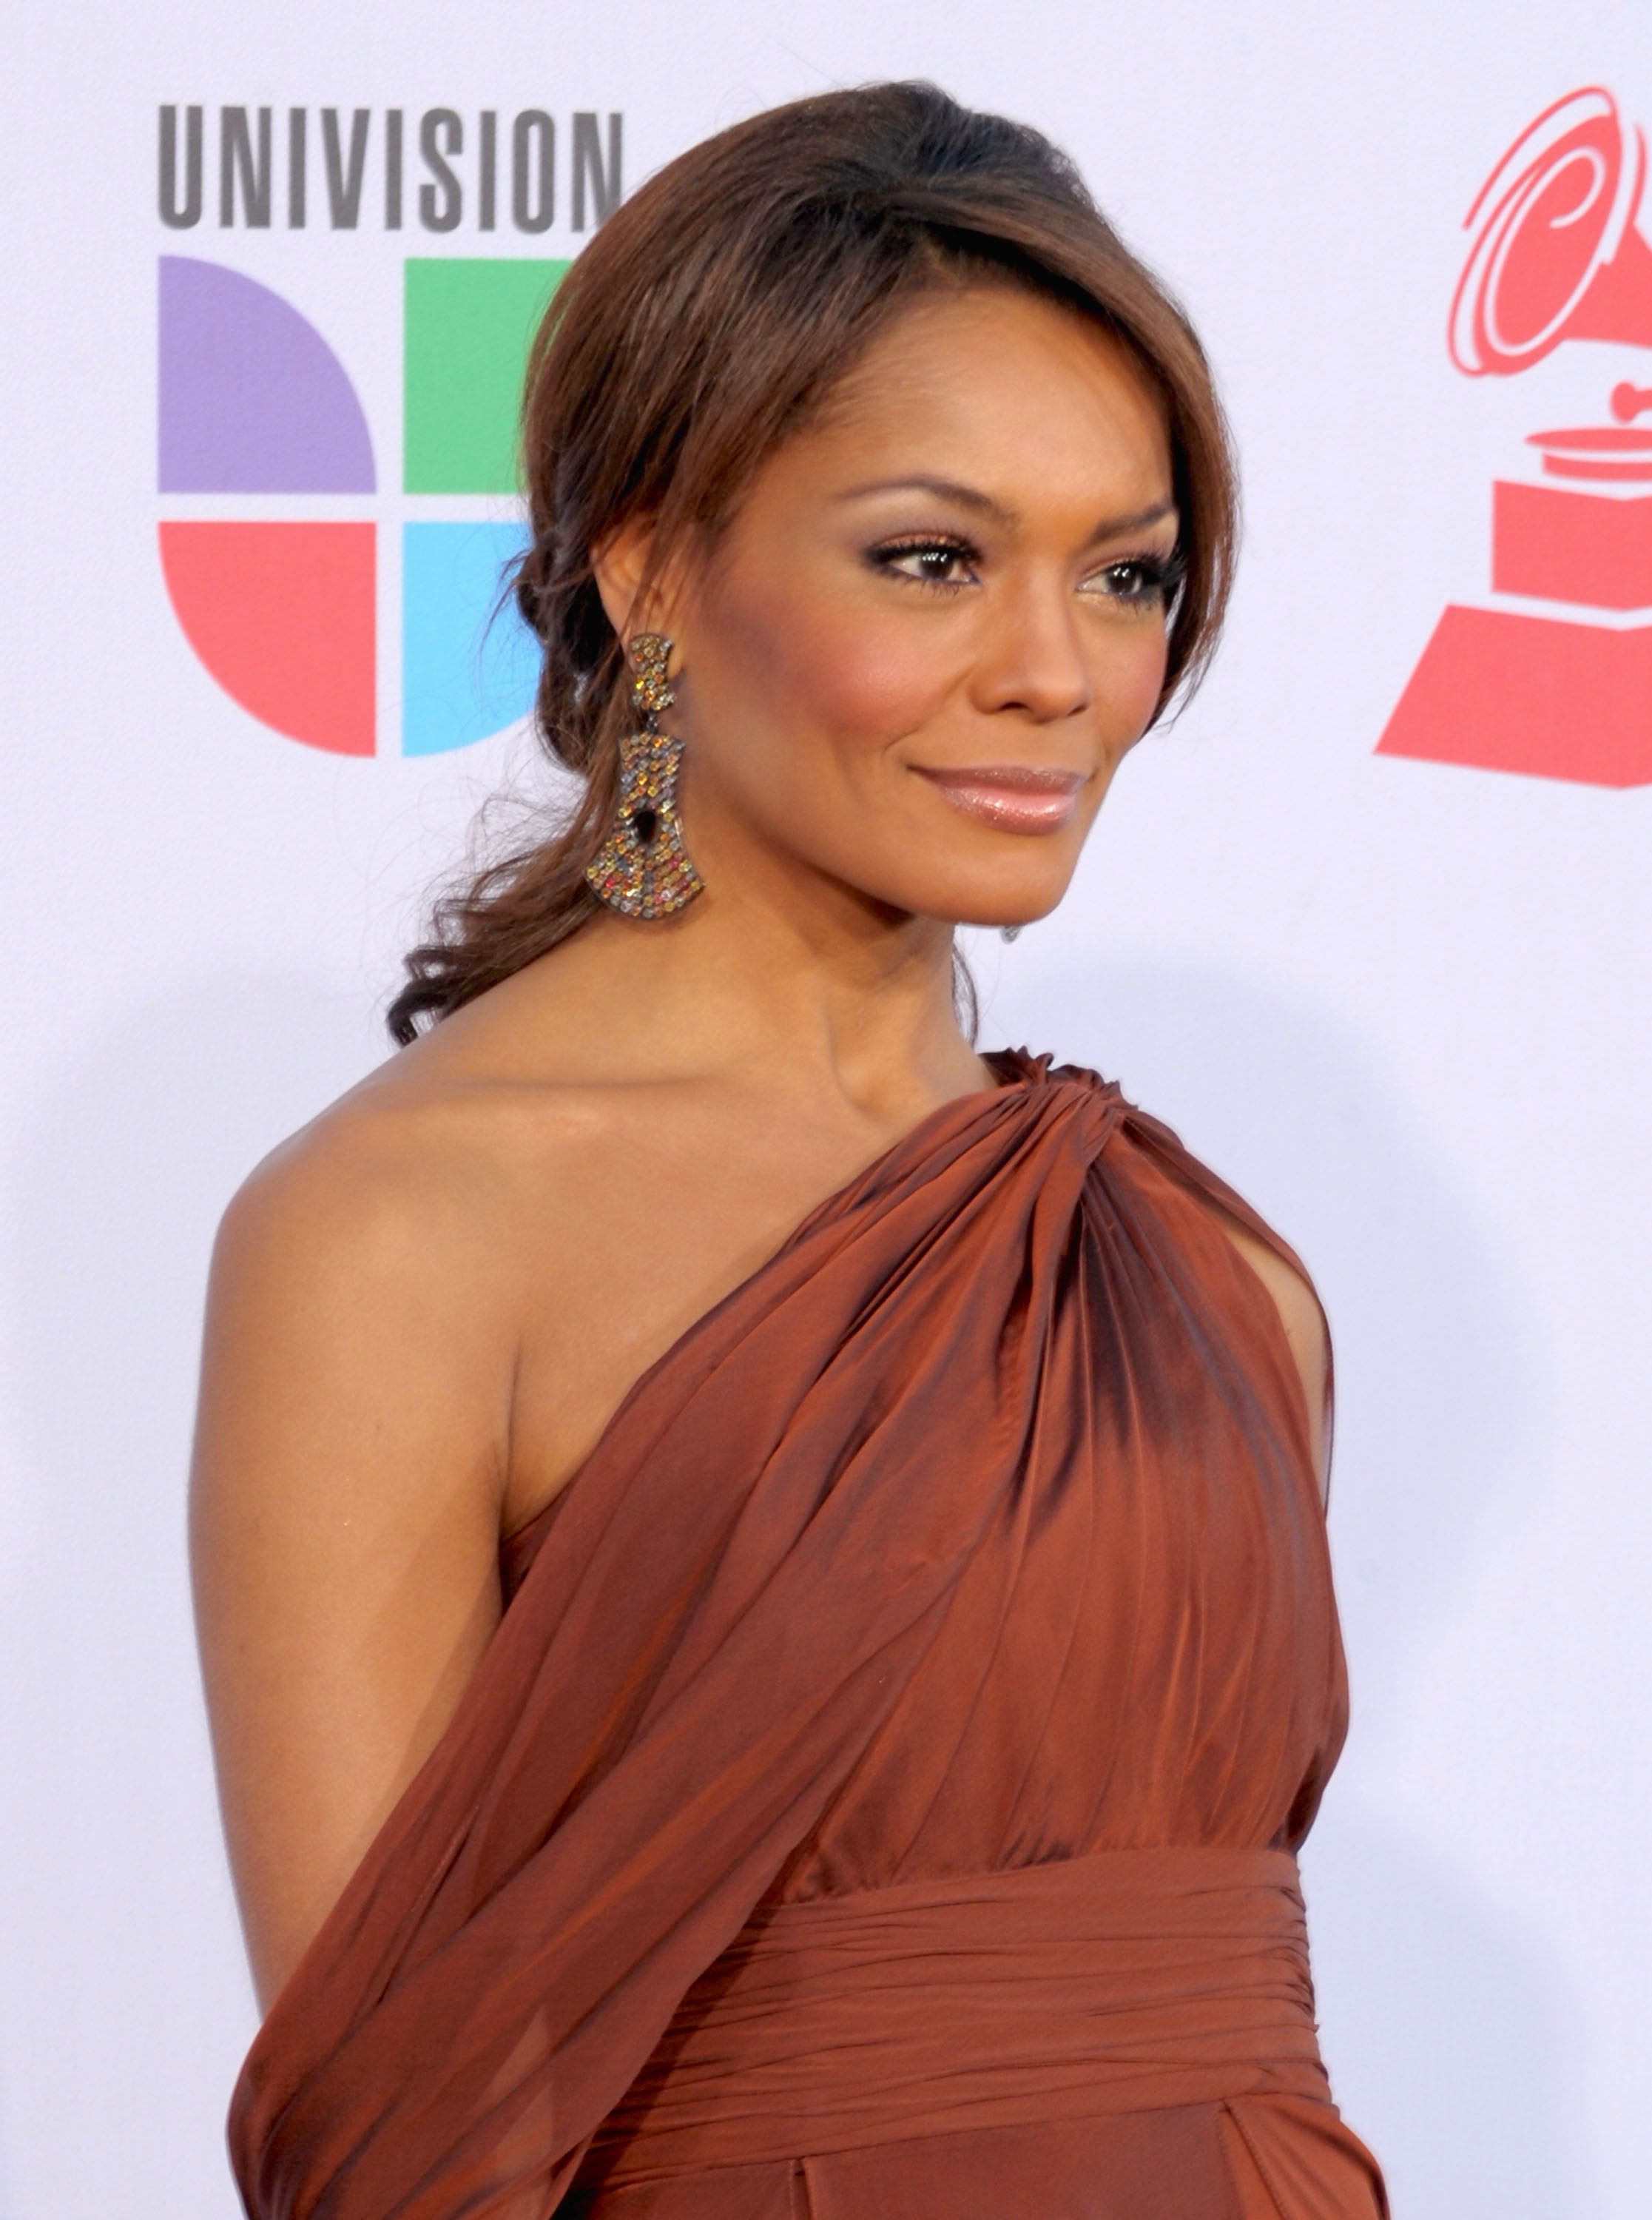 The 11th Annual Latin GRAMMY Awards - Arrivals